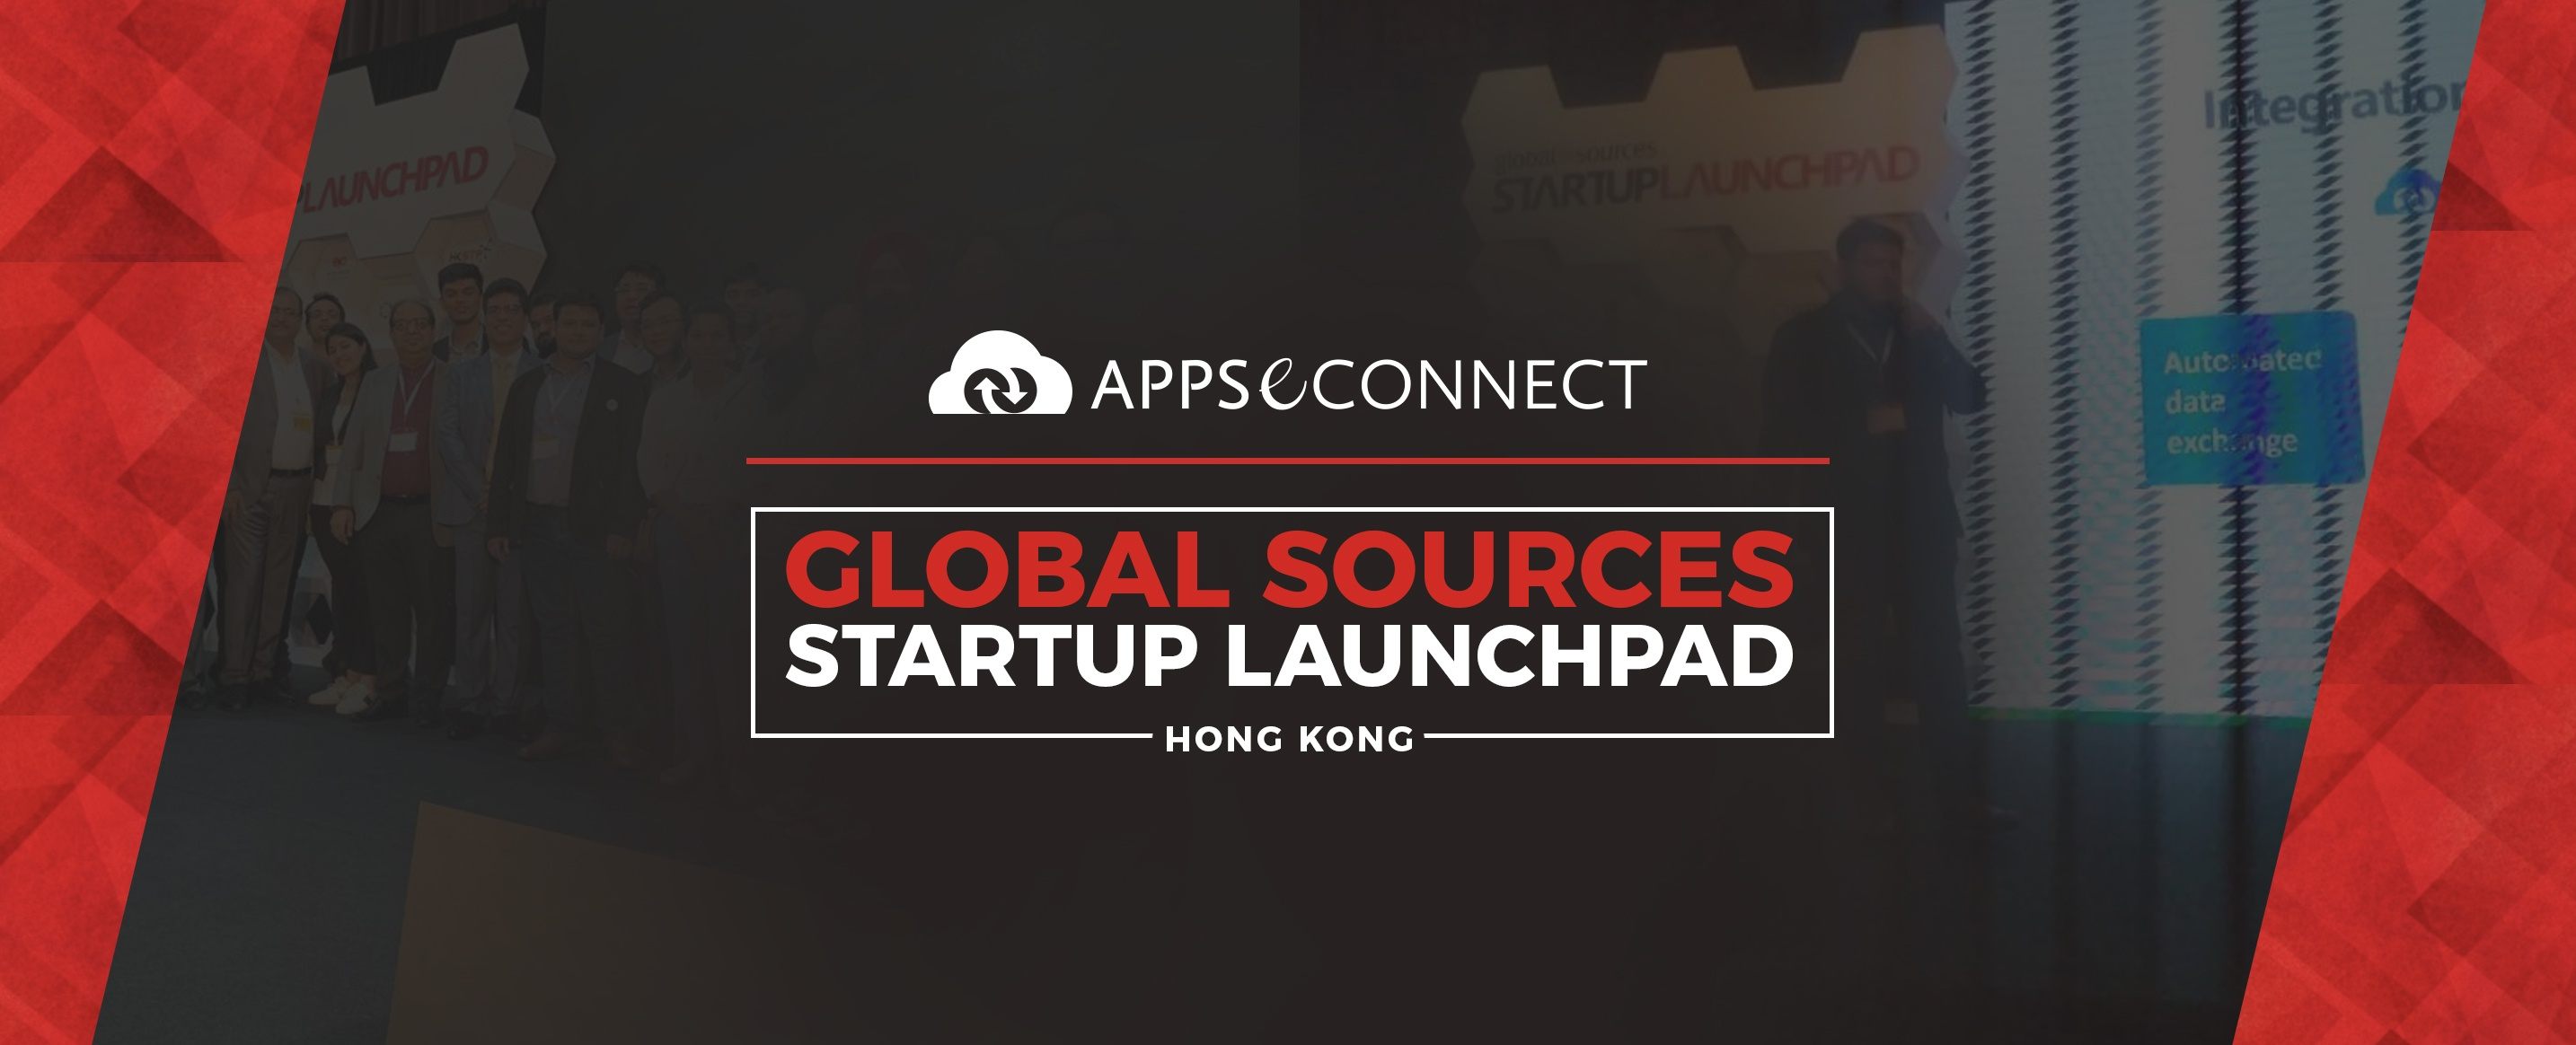 InSync Exhibited at Global Sources Startup Launchpad – Hong Kong